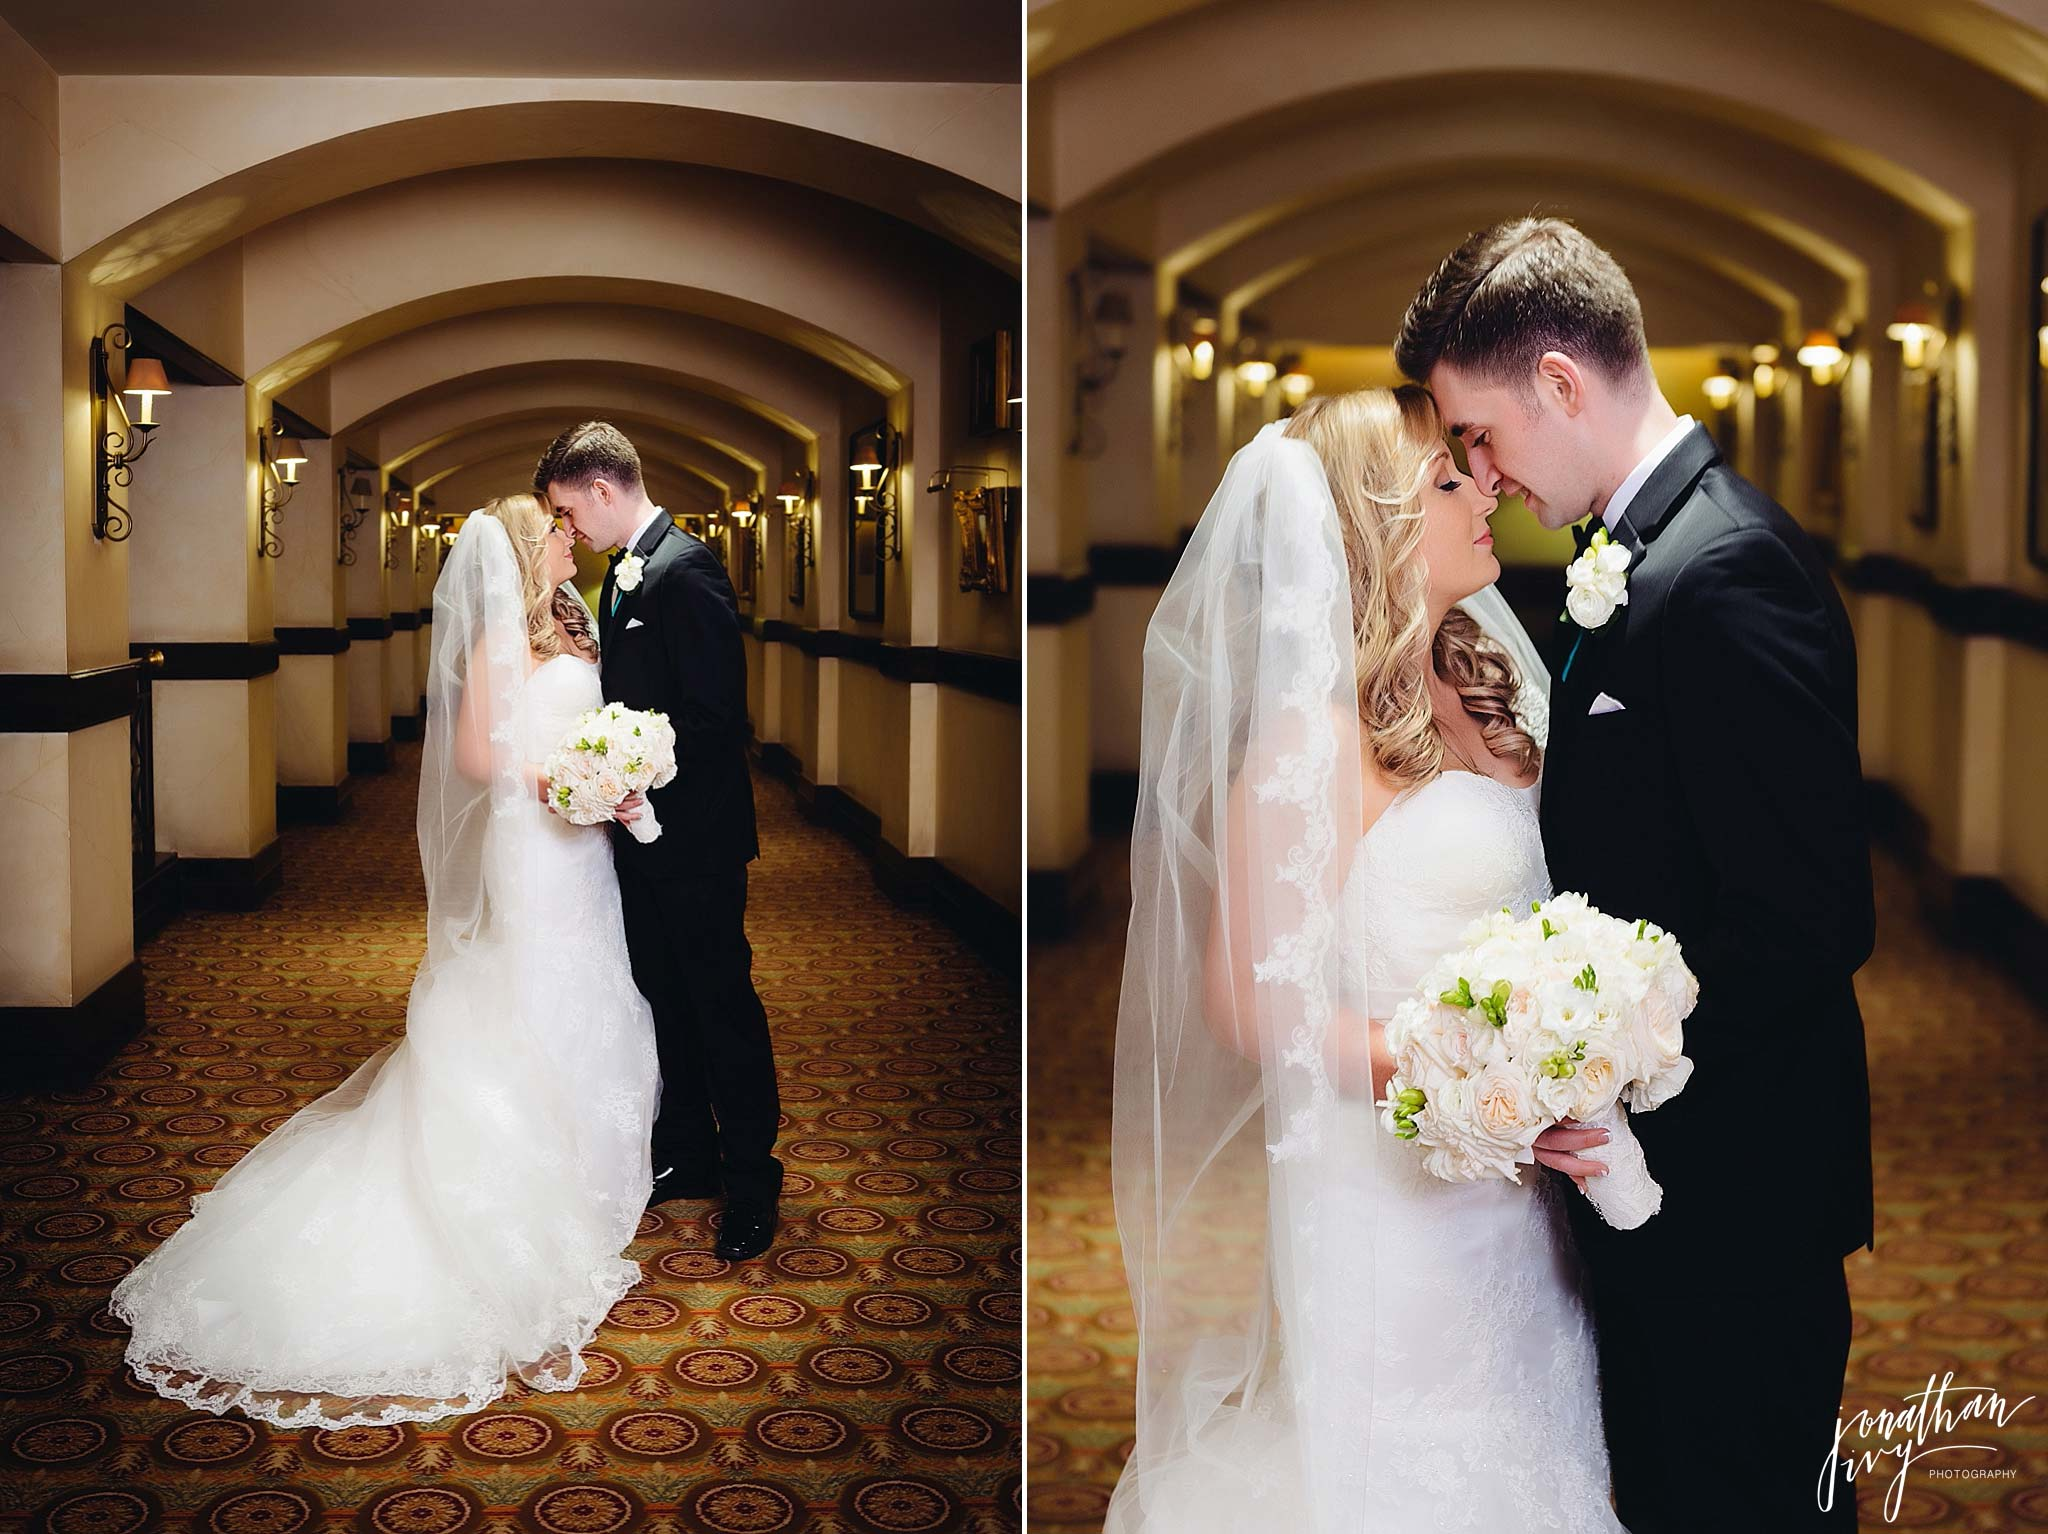 Wedding at the Houstonian Hotel